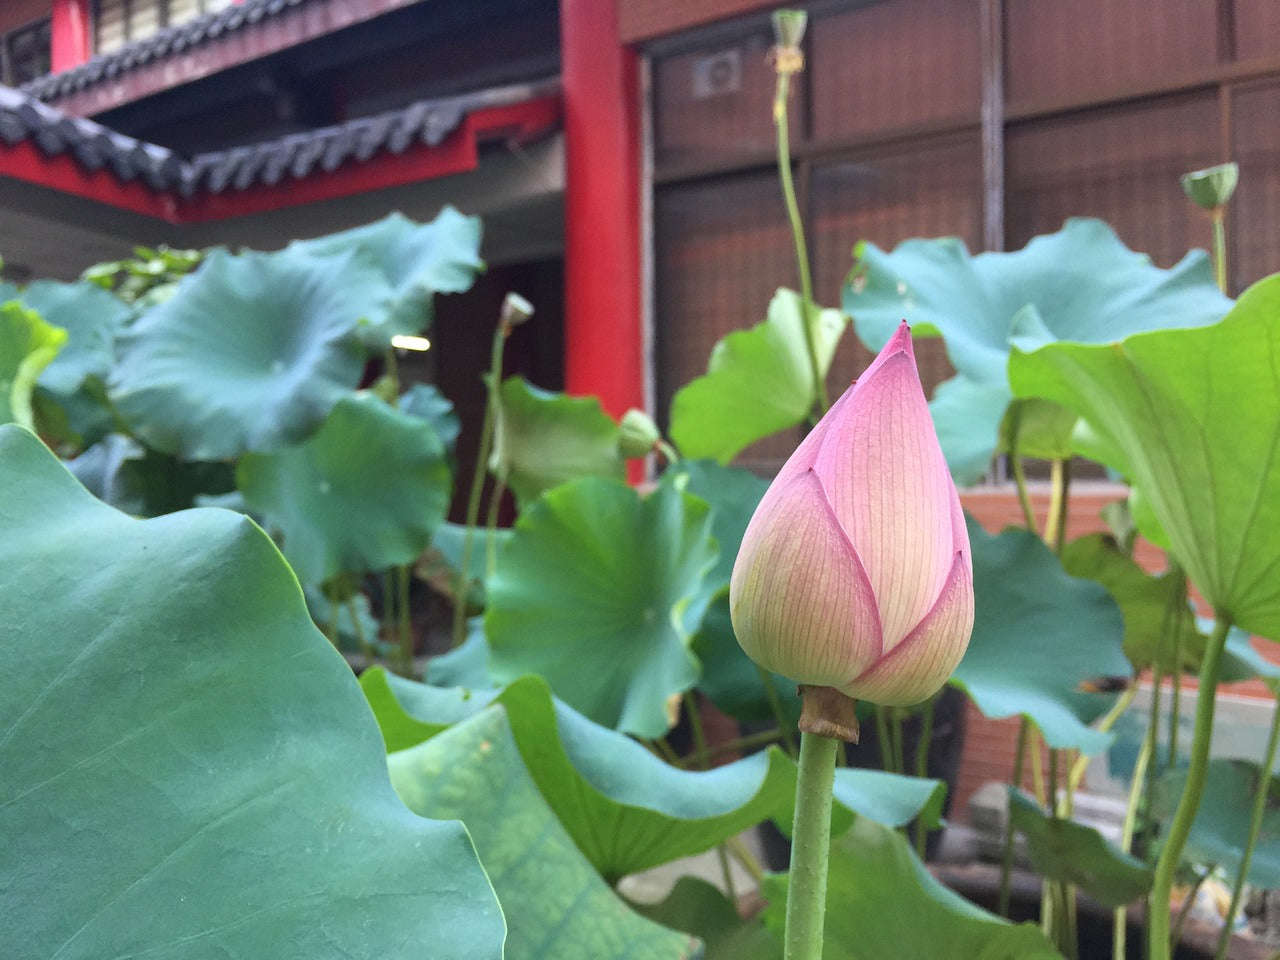 Bourgeon de fleur de lotus das un temple bouddhiste